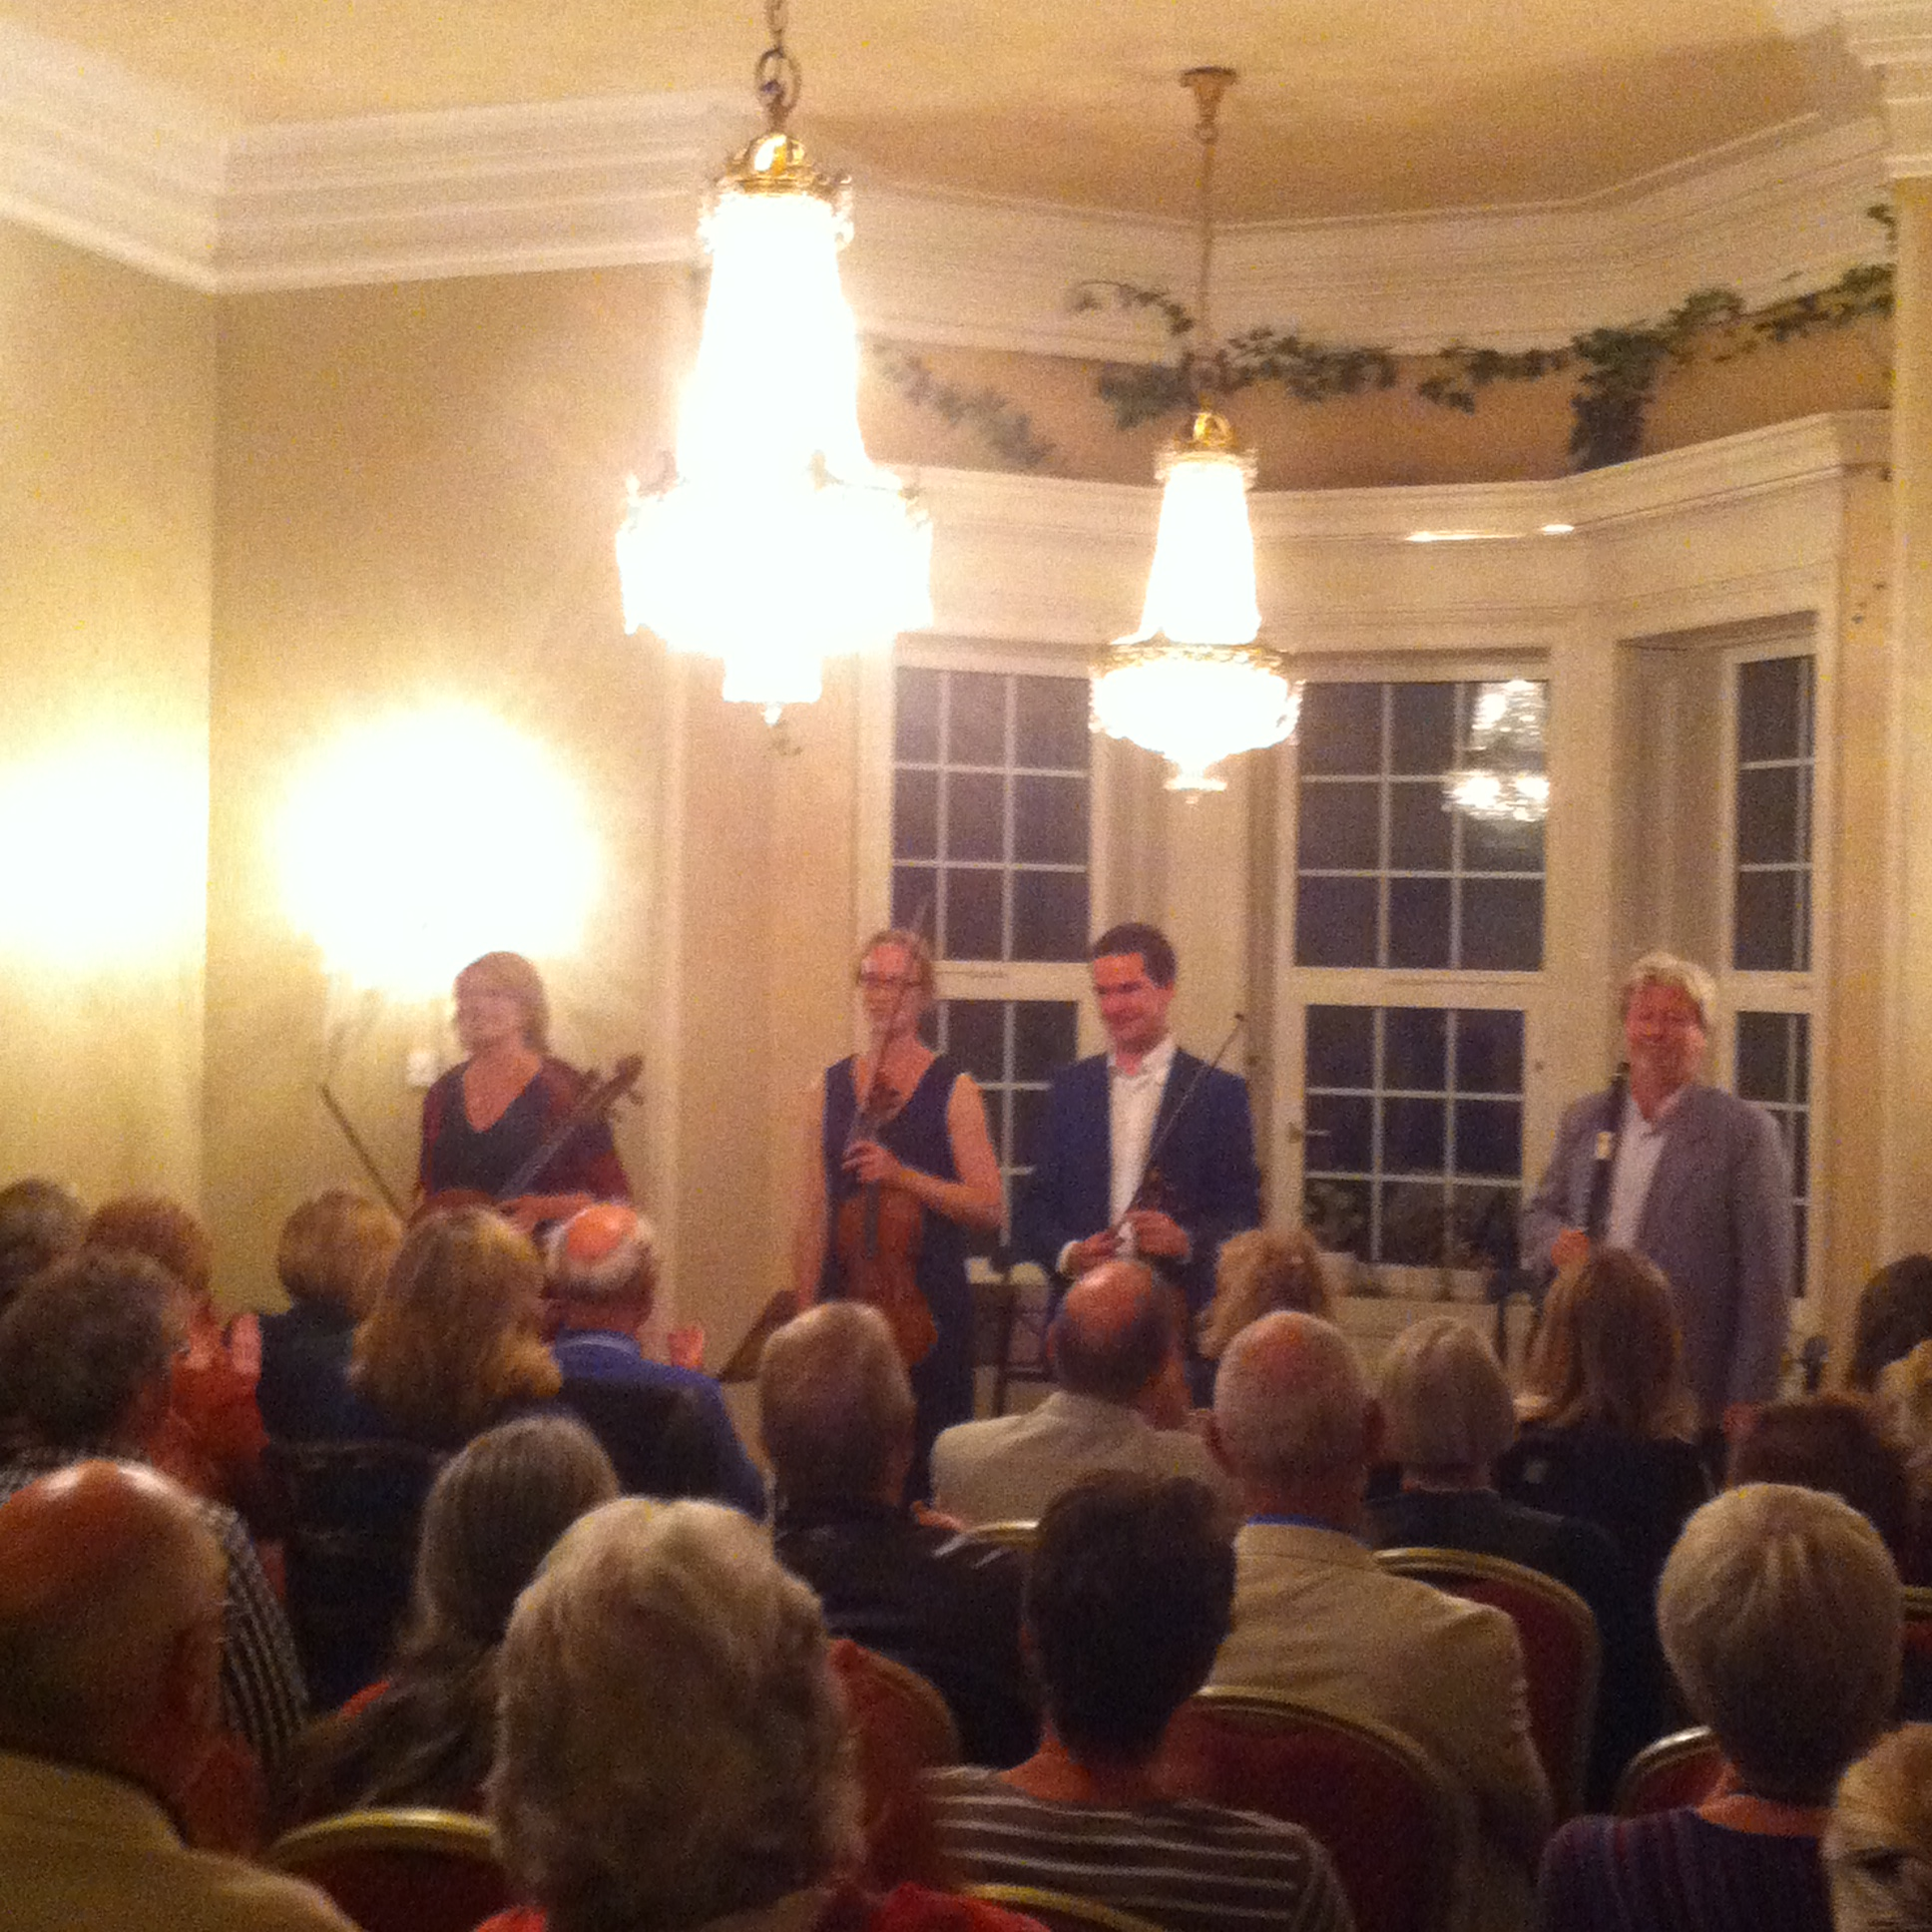 Glanleam House Opening Concert Darragh Morgan, William Dowdall, Nancy Johnson, Miriam Roycrof